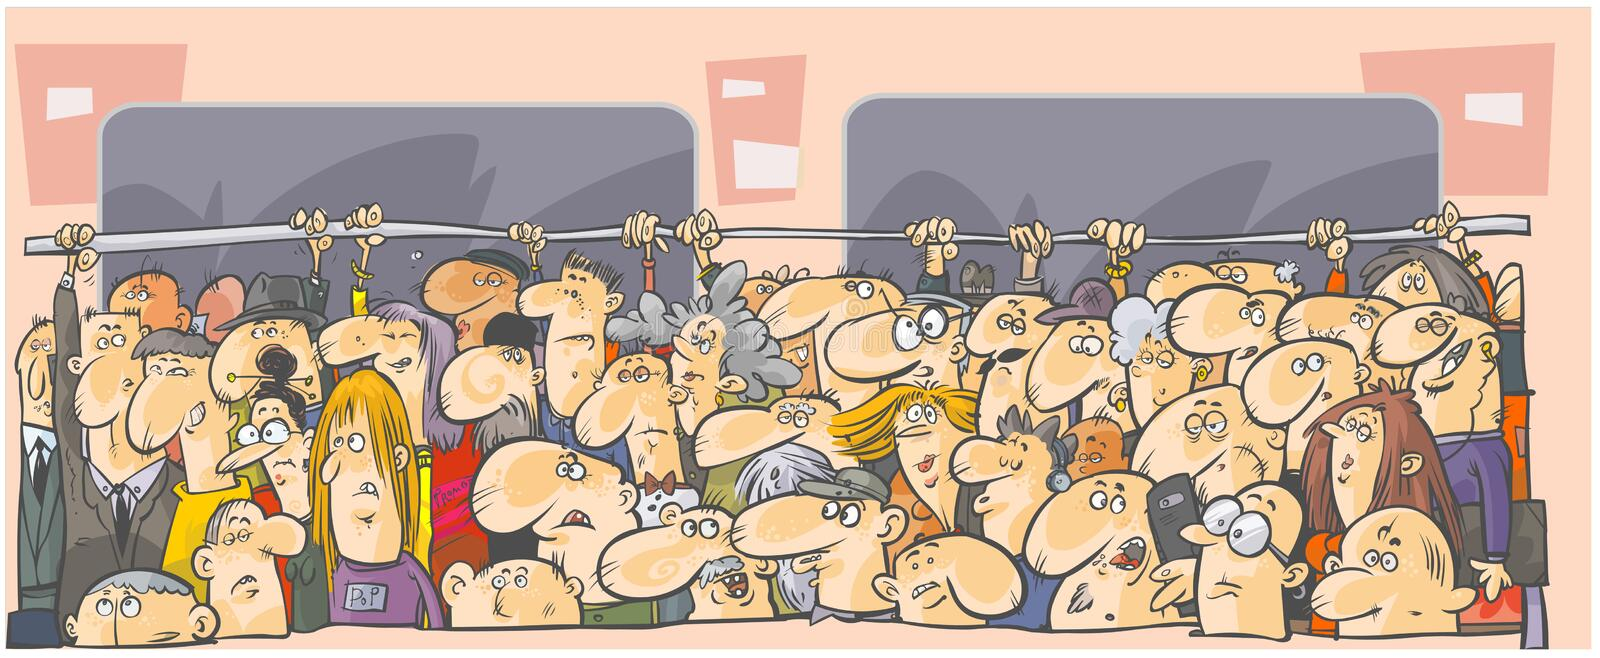 Crowd of people in the public transport. stock illustration